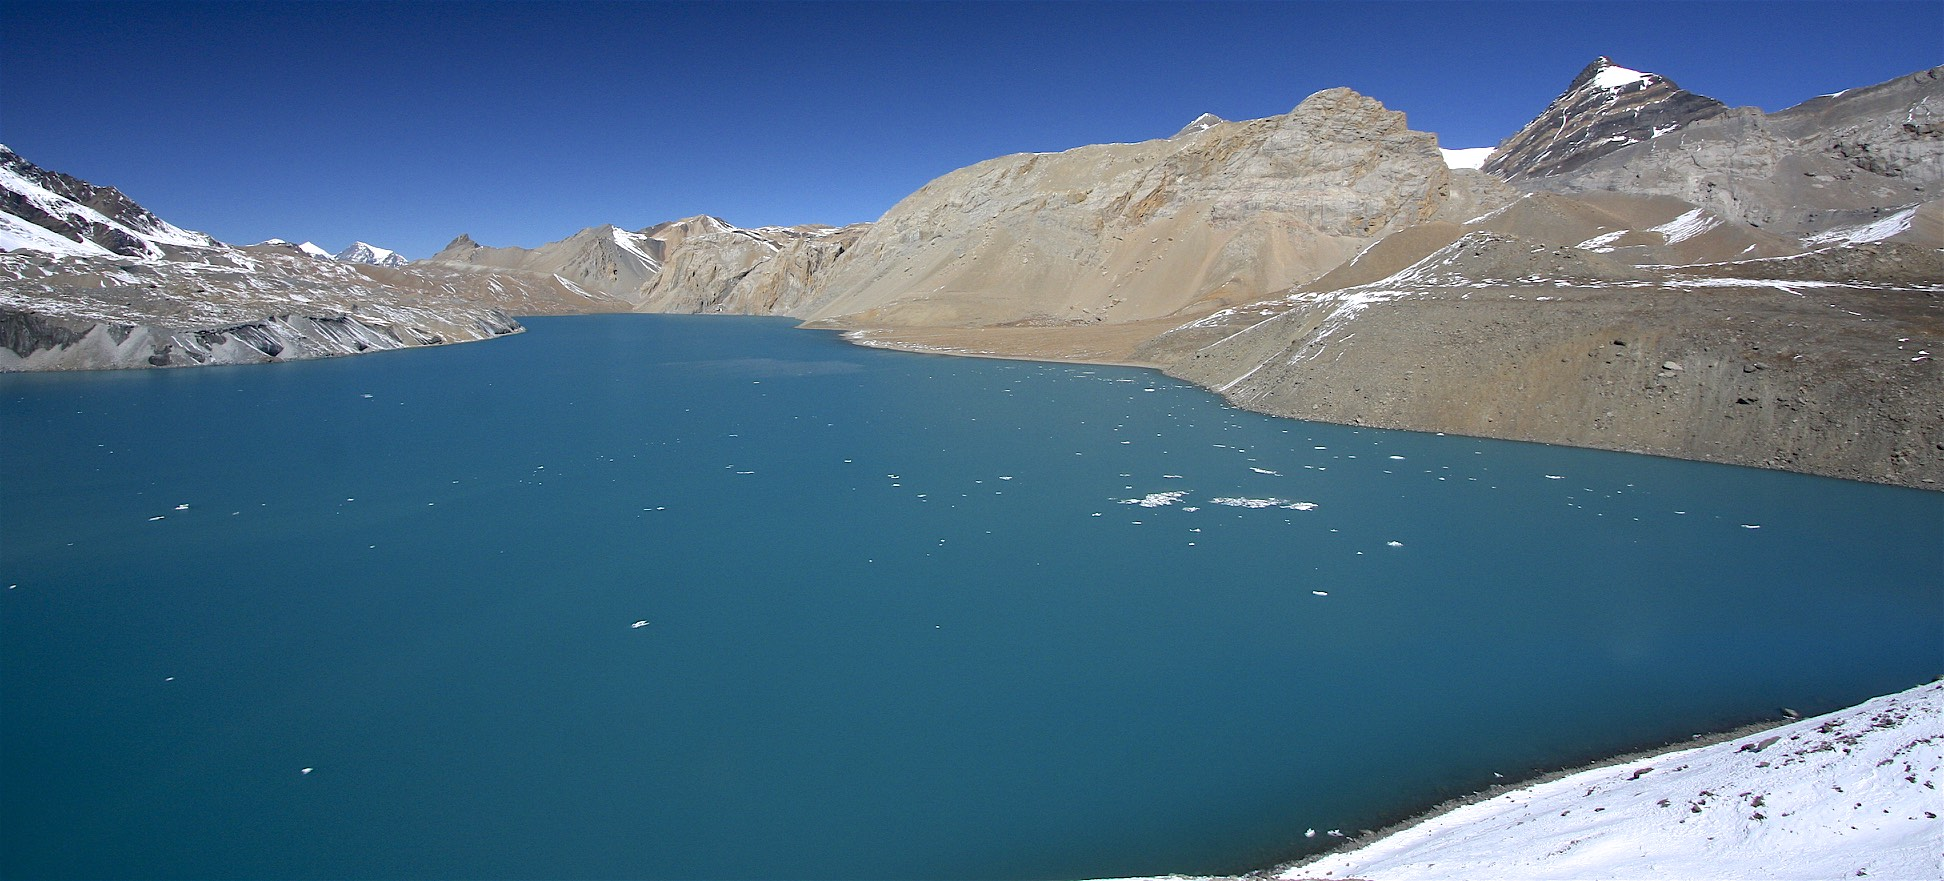 Tilicho Lake is located at an altitude of 4,919m. It is the highest lake int he world.